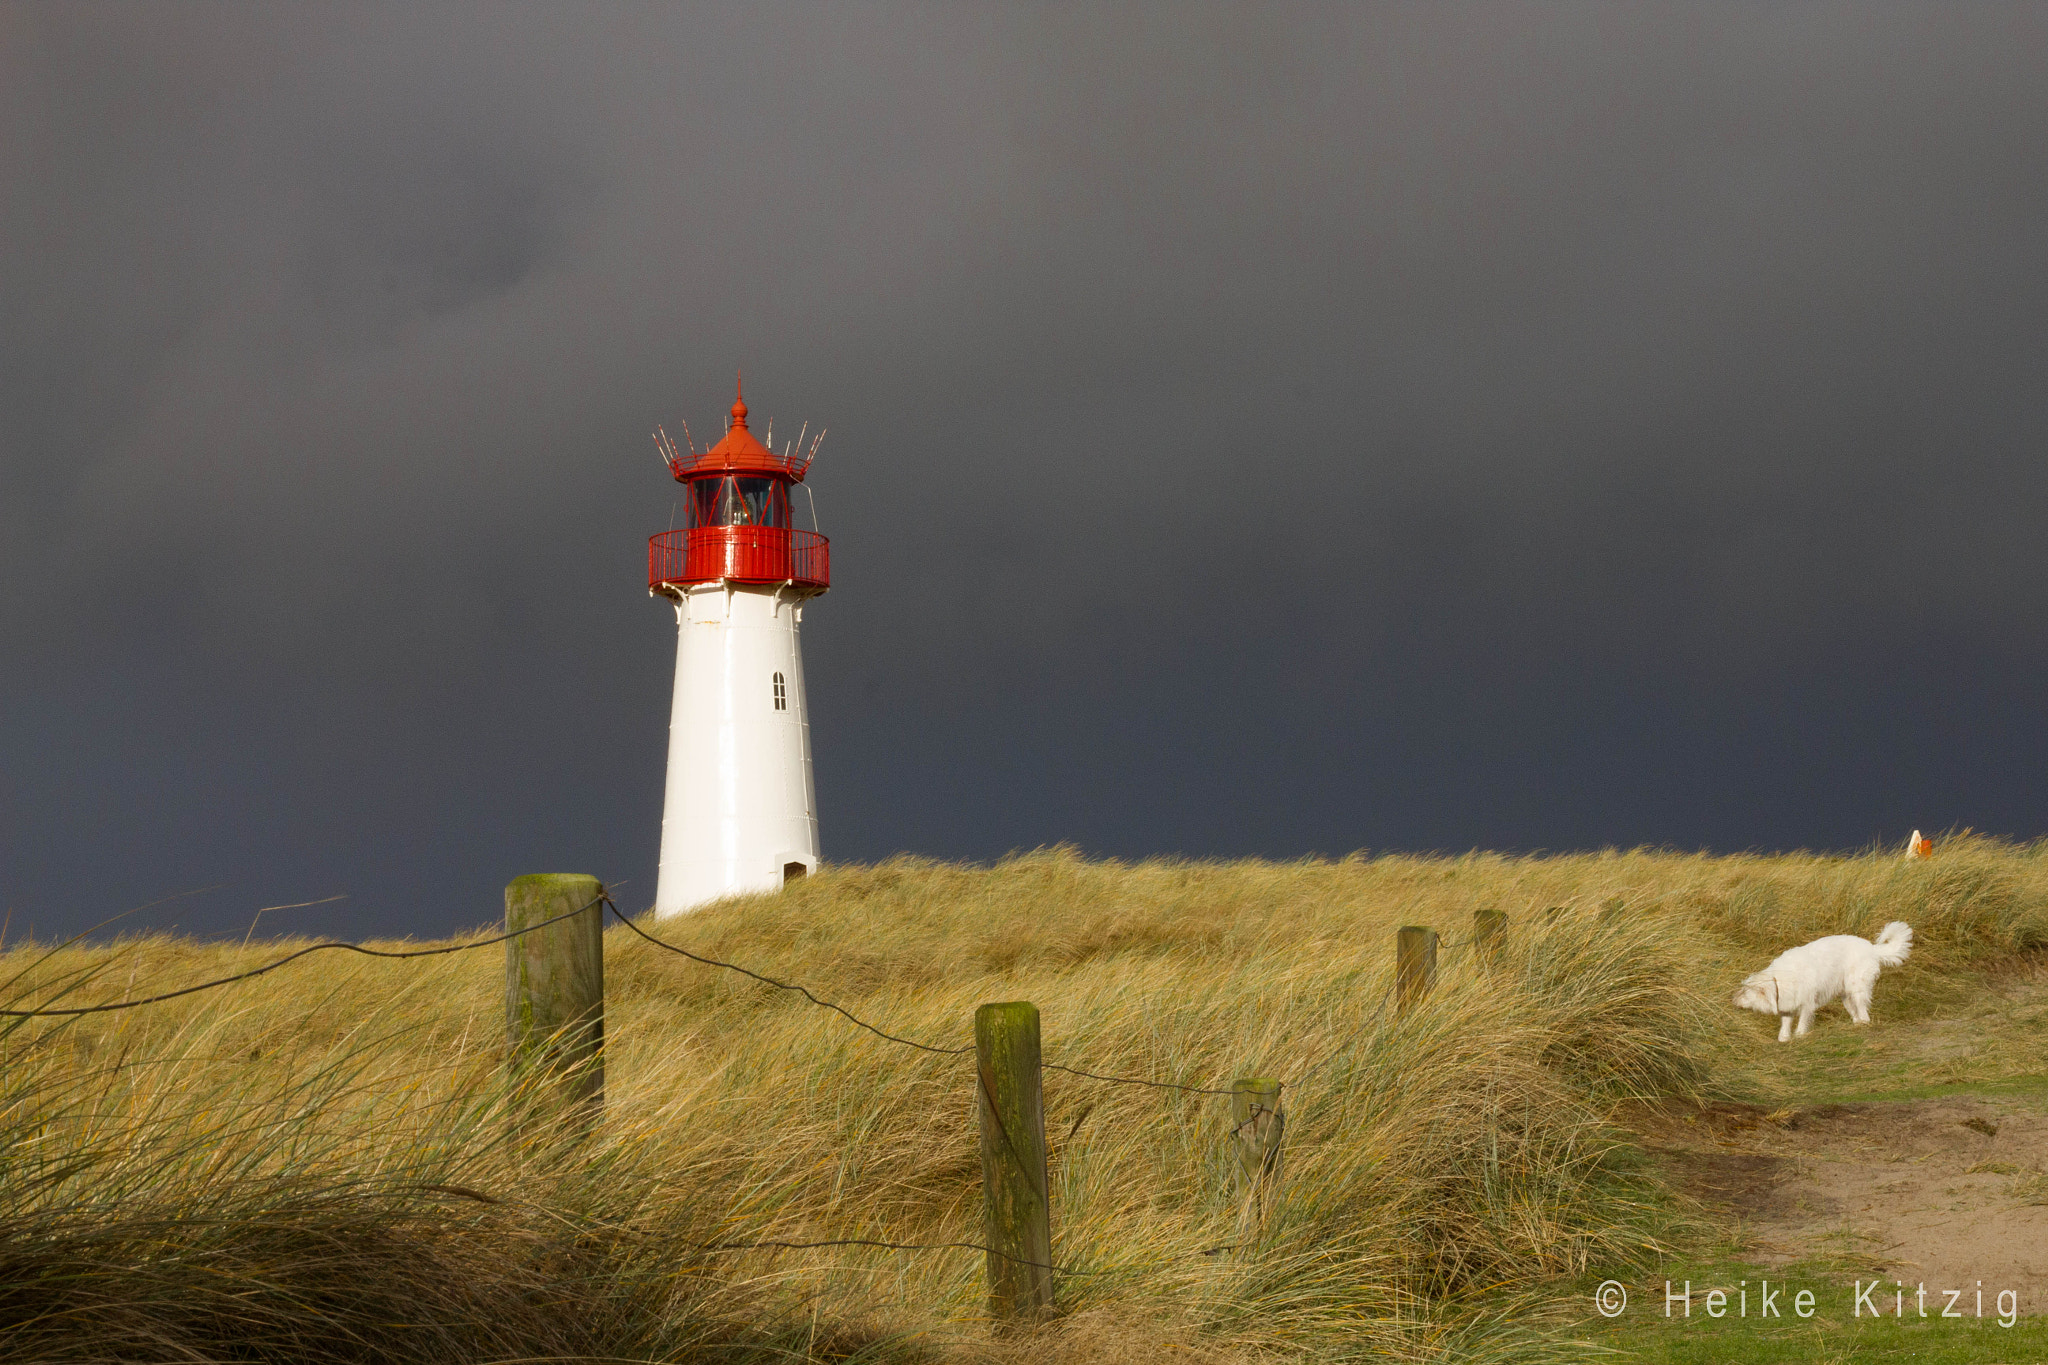 Photograph White red lighthouse in List Sylt with dog Emma by Heike Kitzig on 500px